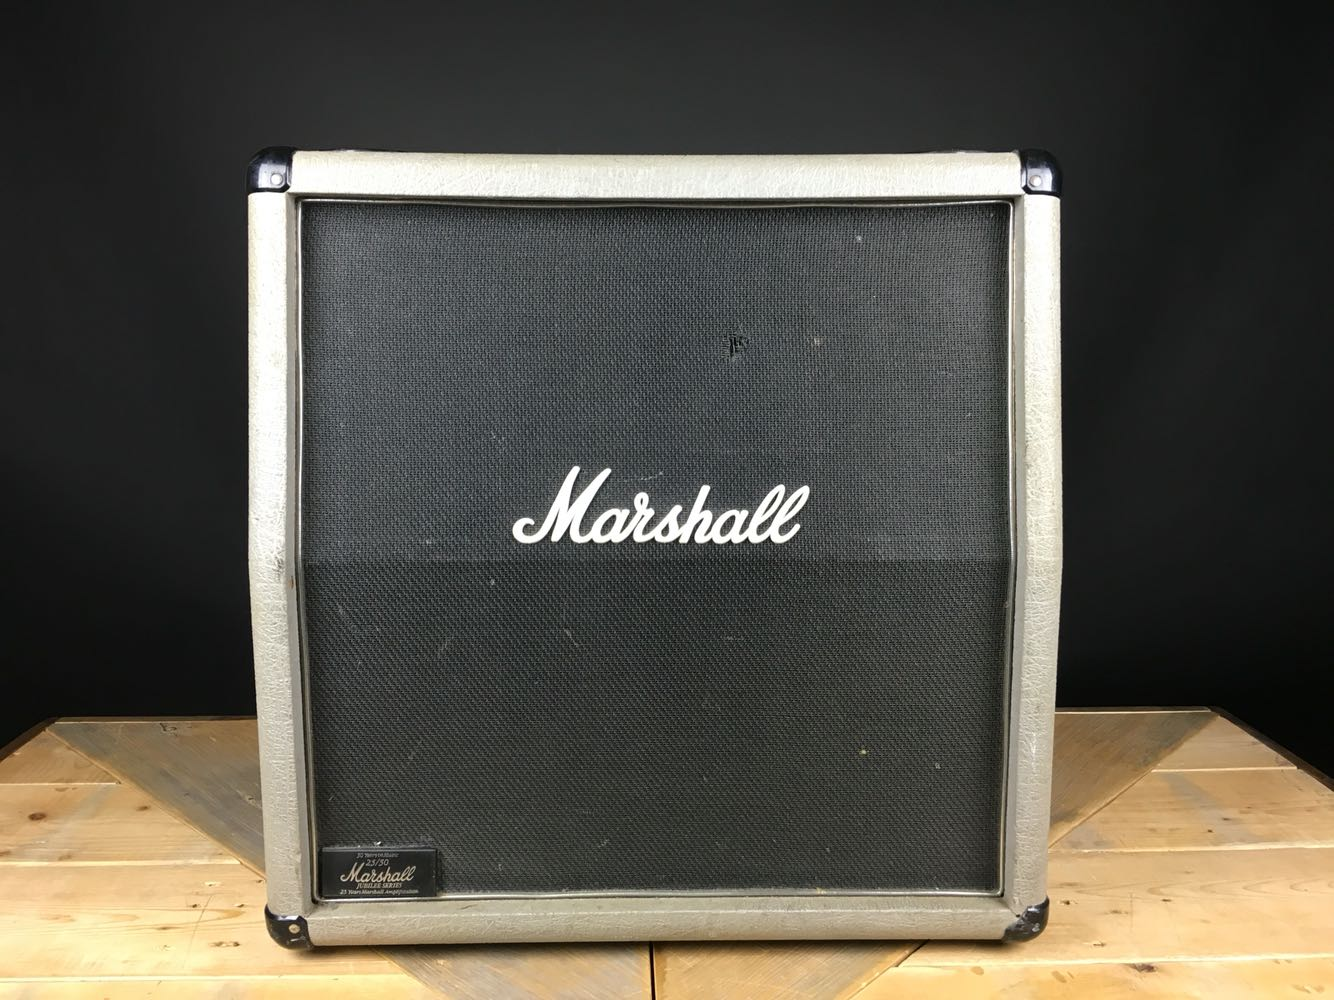 Marshall Silver Jubilee 2556a 2x12 Cabinet